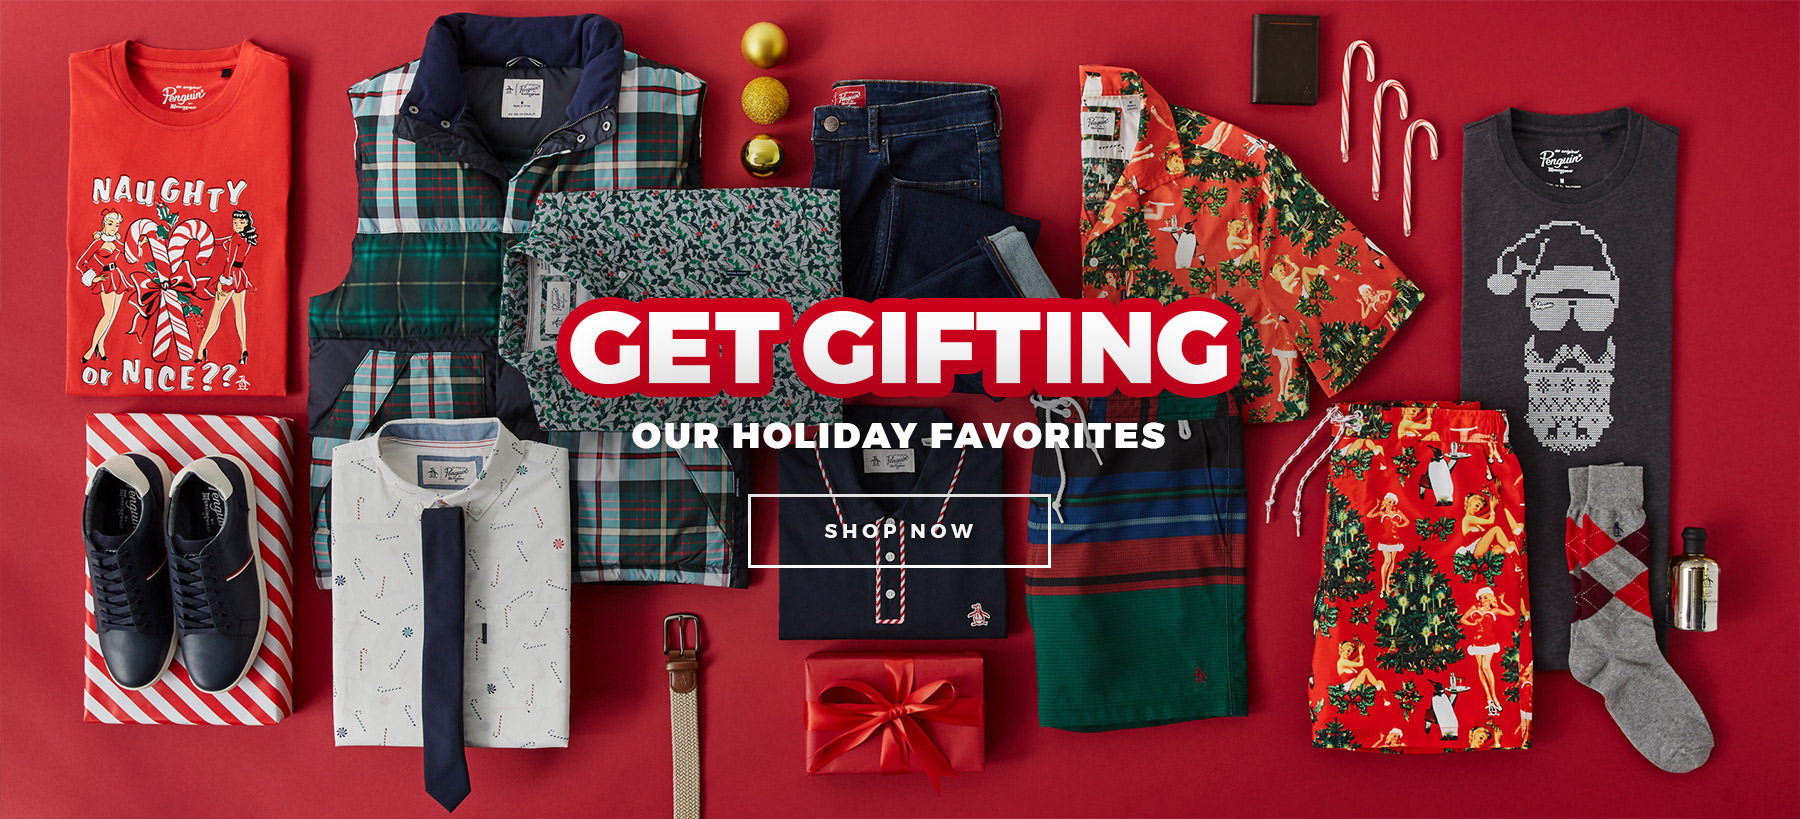 Get Gifting Our Holiday Favorites - Shop Now